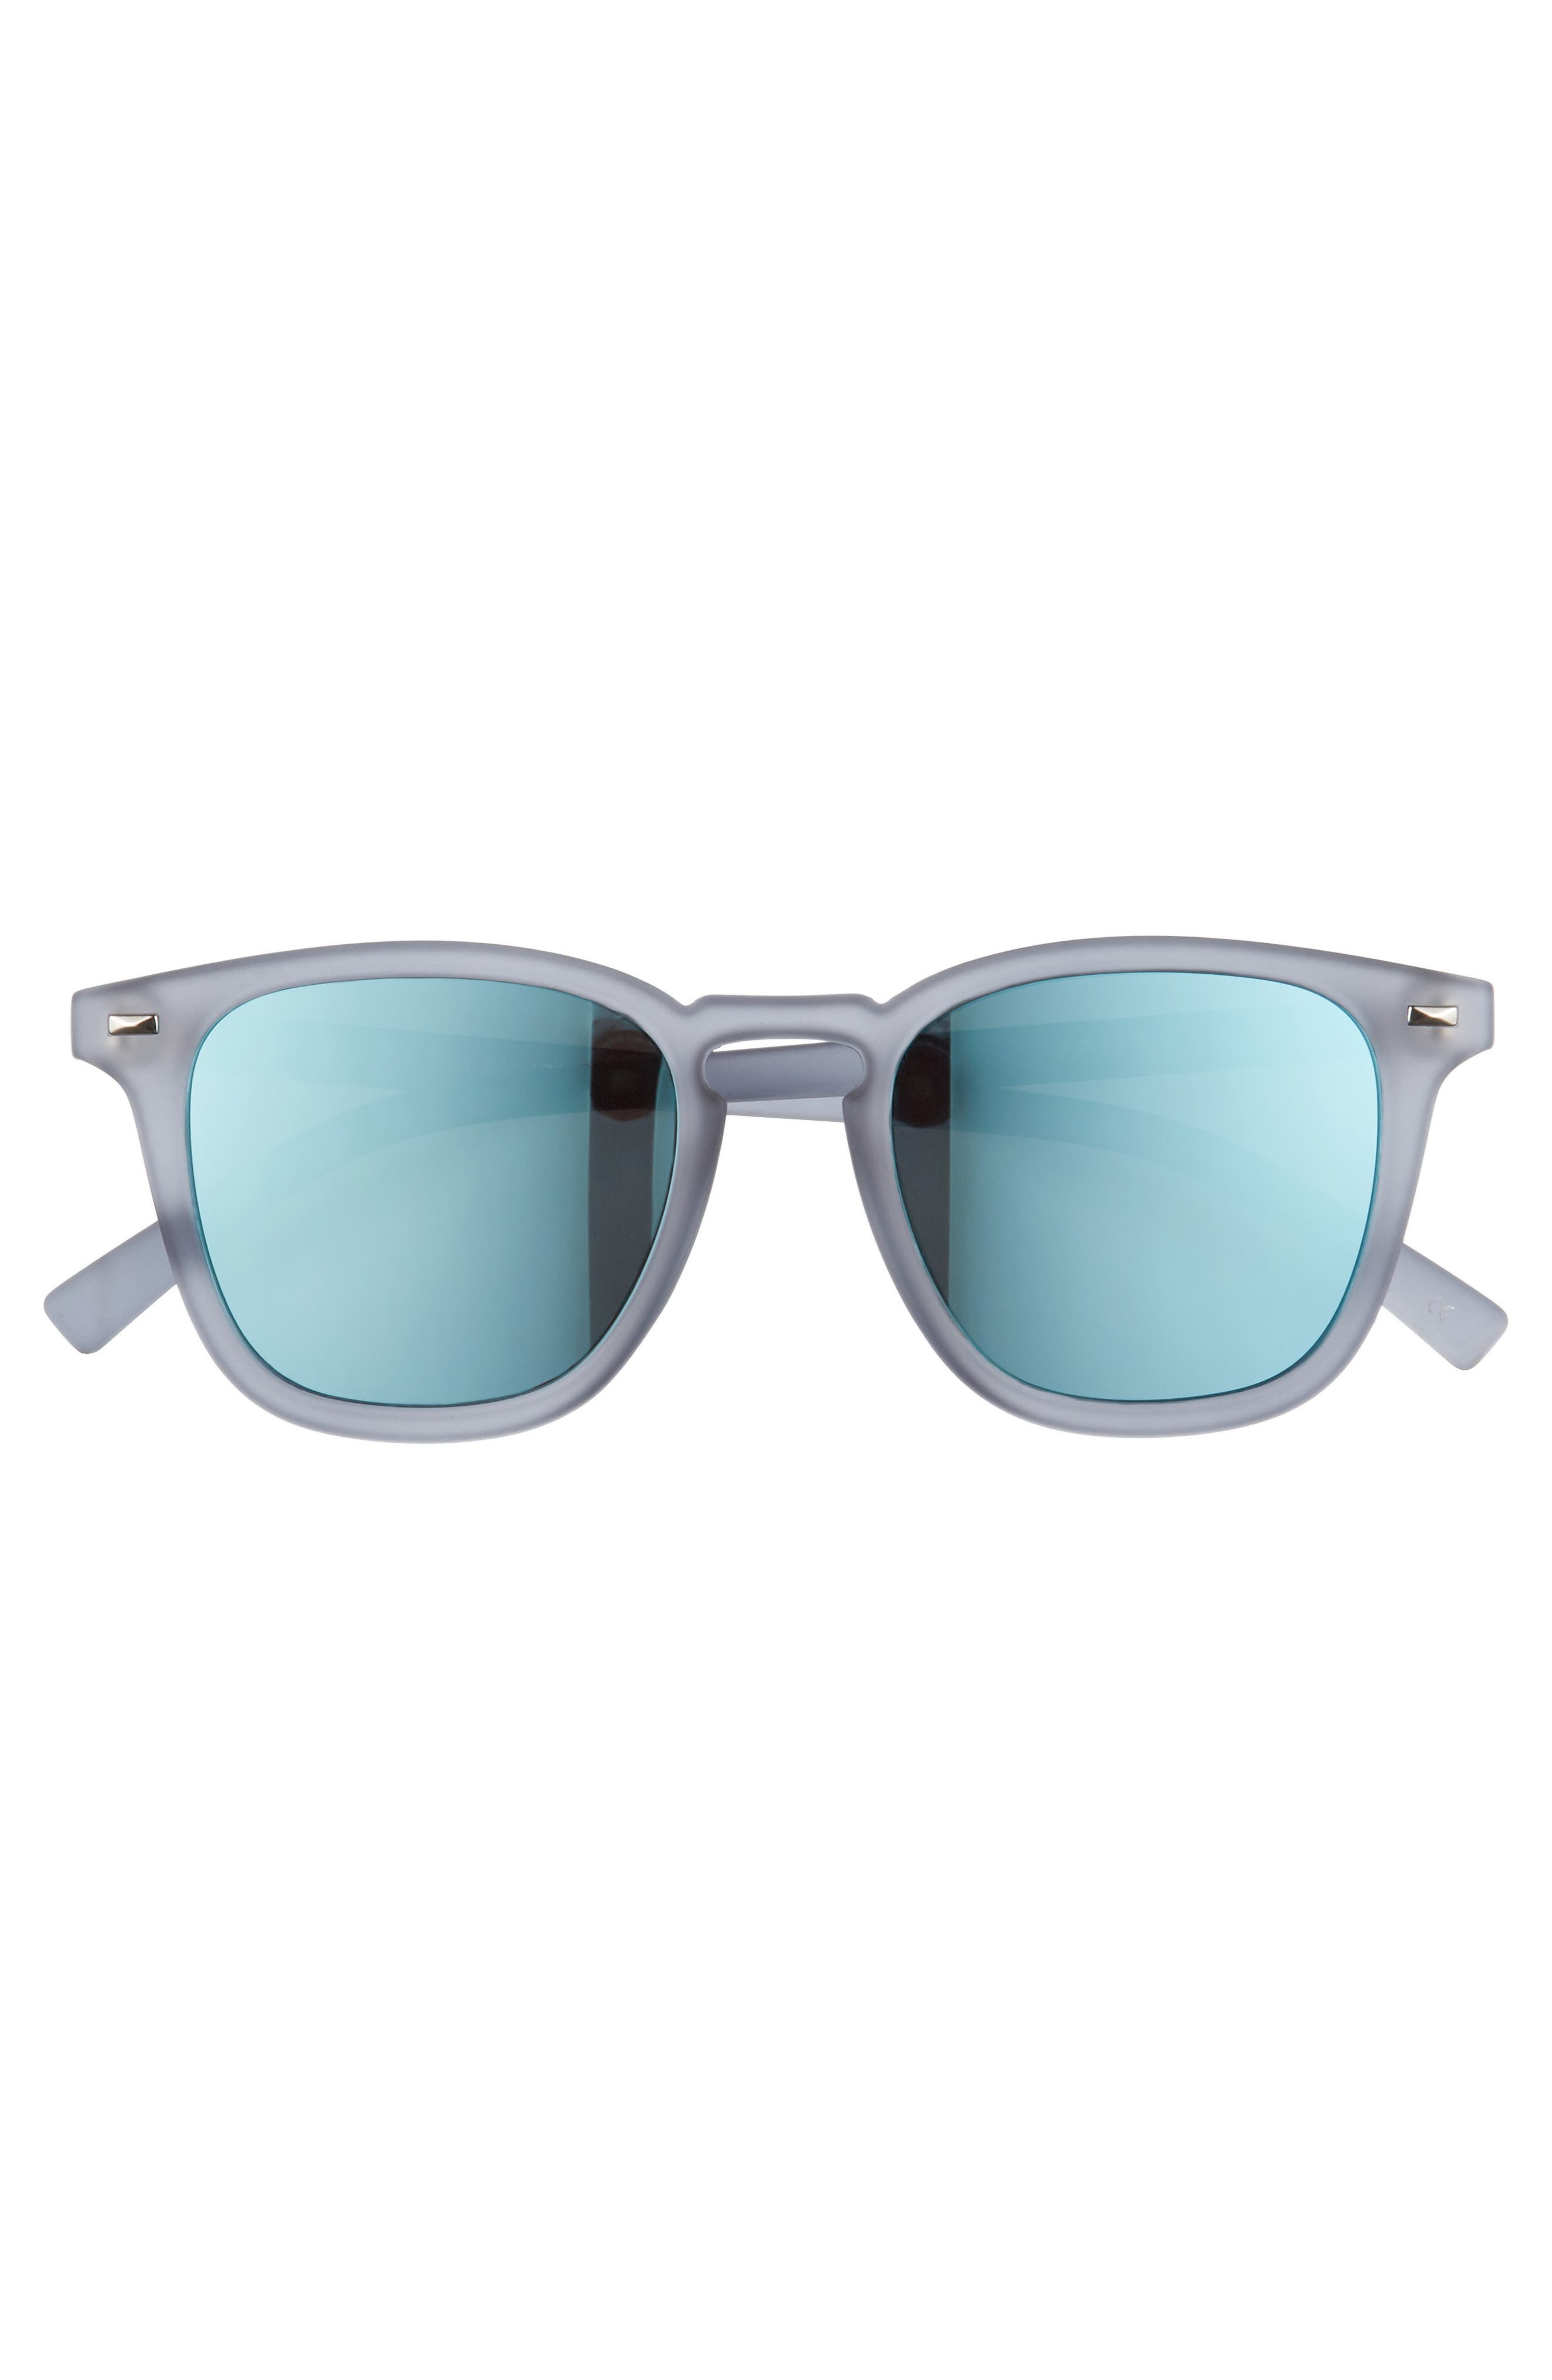 No Biggie 45mm Sunglasses,                             Alternate thumbnail 8, color,